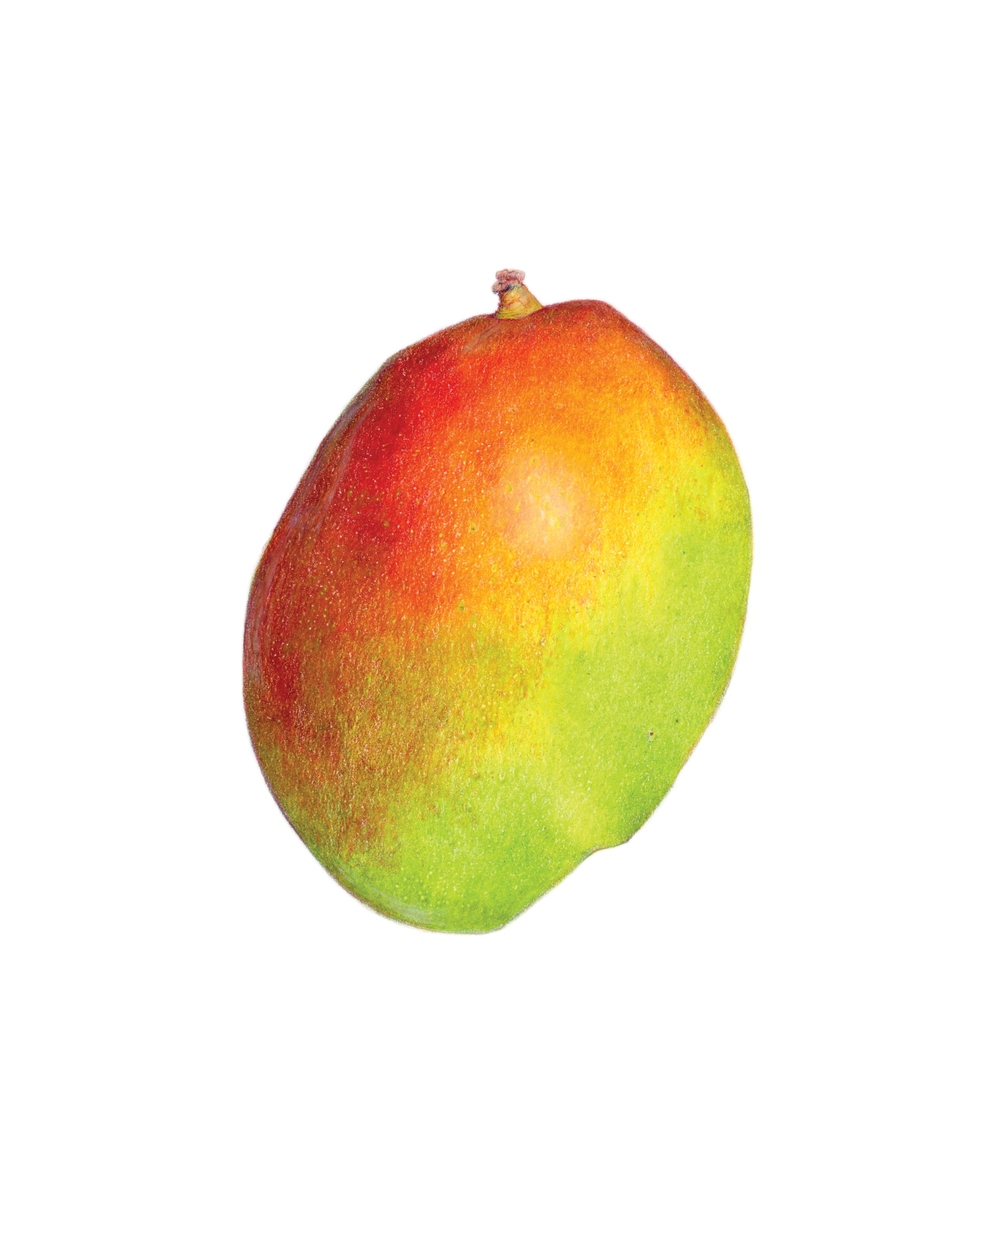 Mango, colored pencil